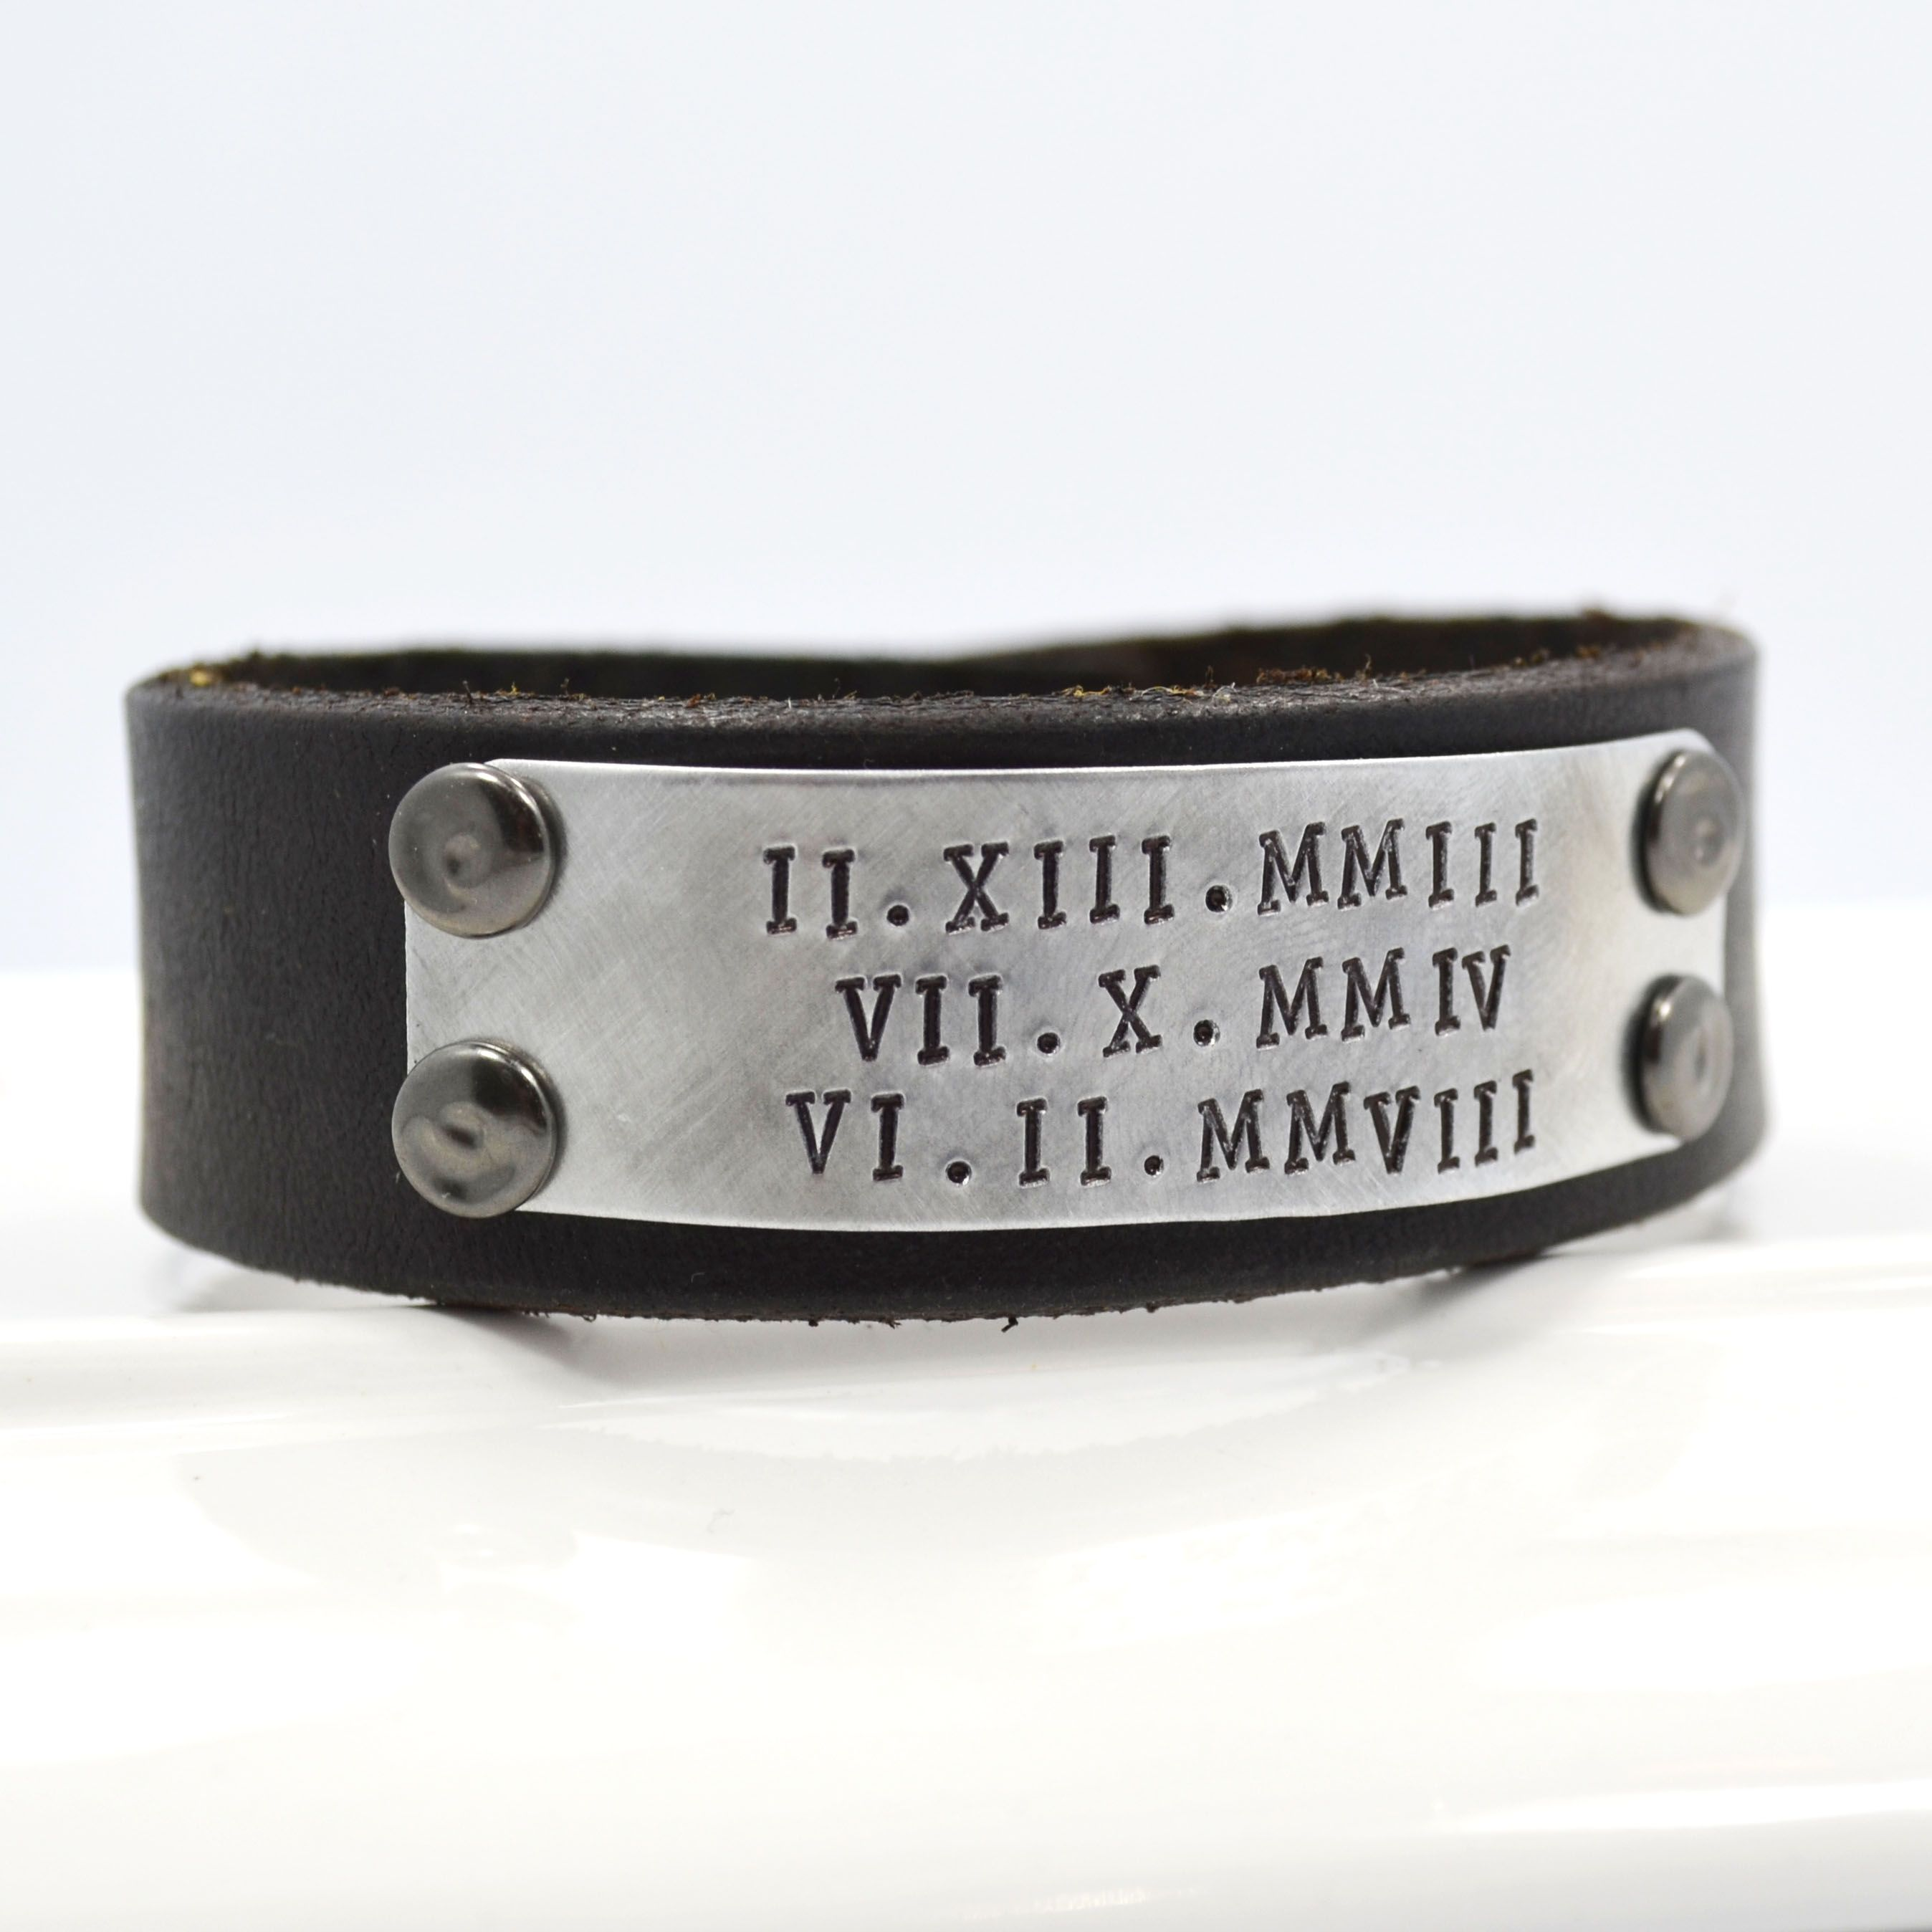 Custom Made Leather Cuff Bracelet For Men Or Women Personalized With Roman Numerals Dates Names